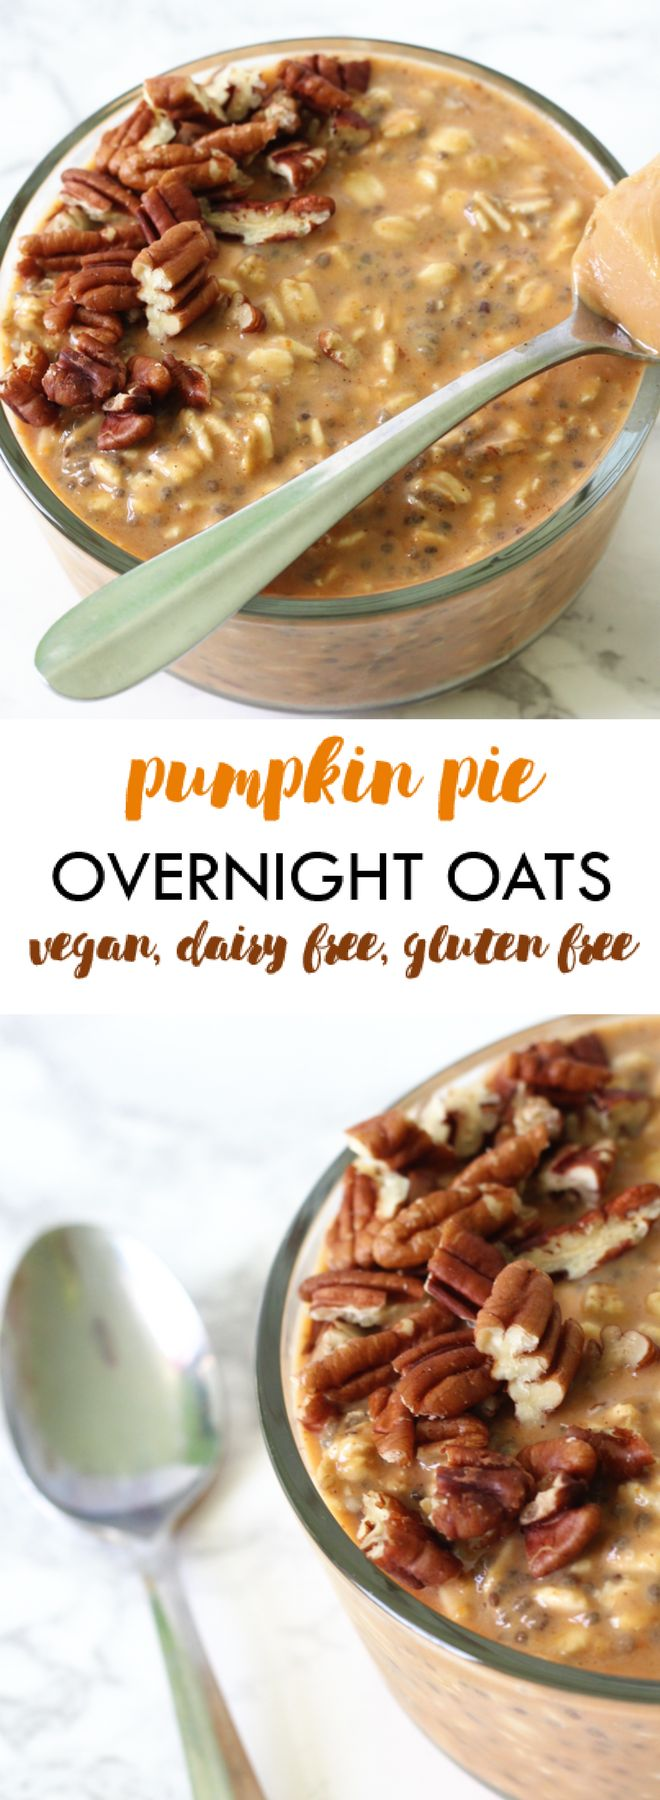 Pumpkin Pie Overnight Oats | get in the fall season with PUMPKIN pie overnight oats! Easy to prep the night before and enjoy in the morning alongside a cup of coffee | dairy free gluten free vegan meal prep overnight oats fall | Lean, Clean, & Brie